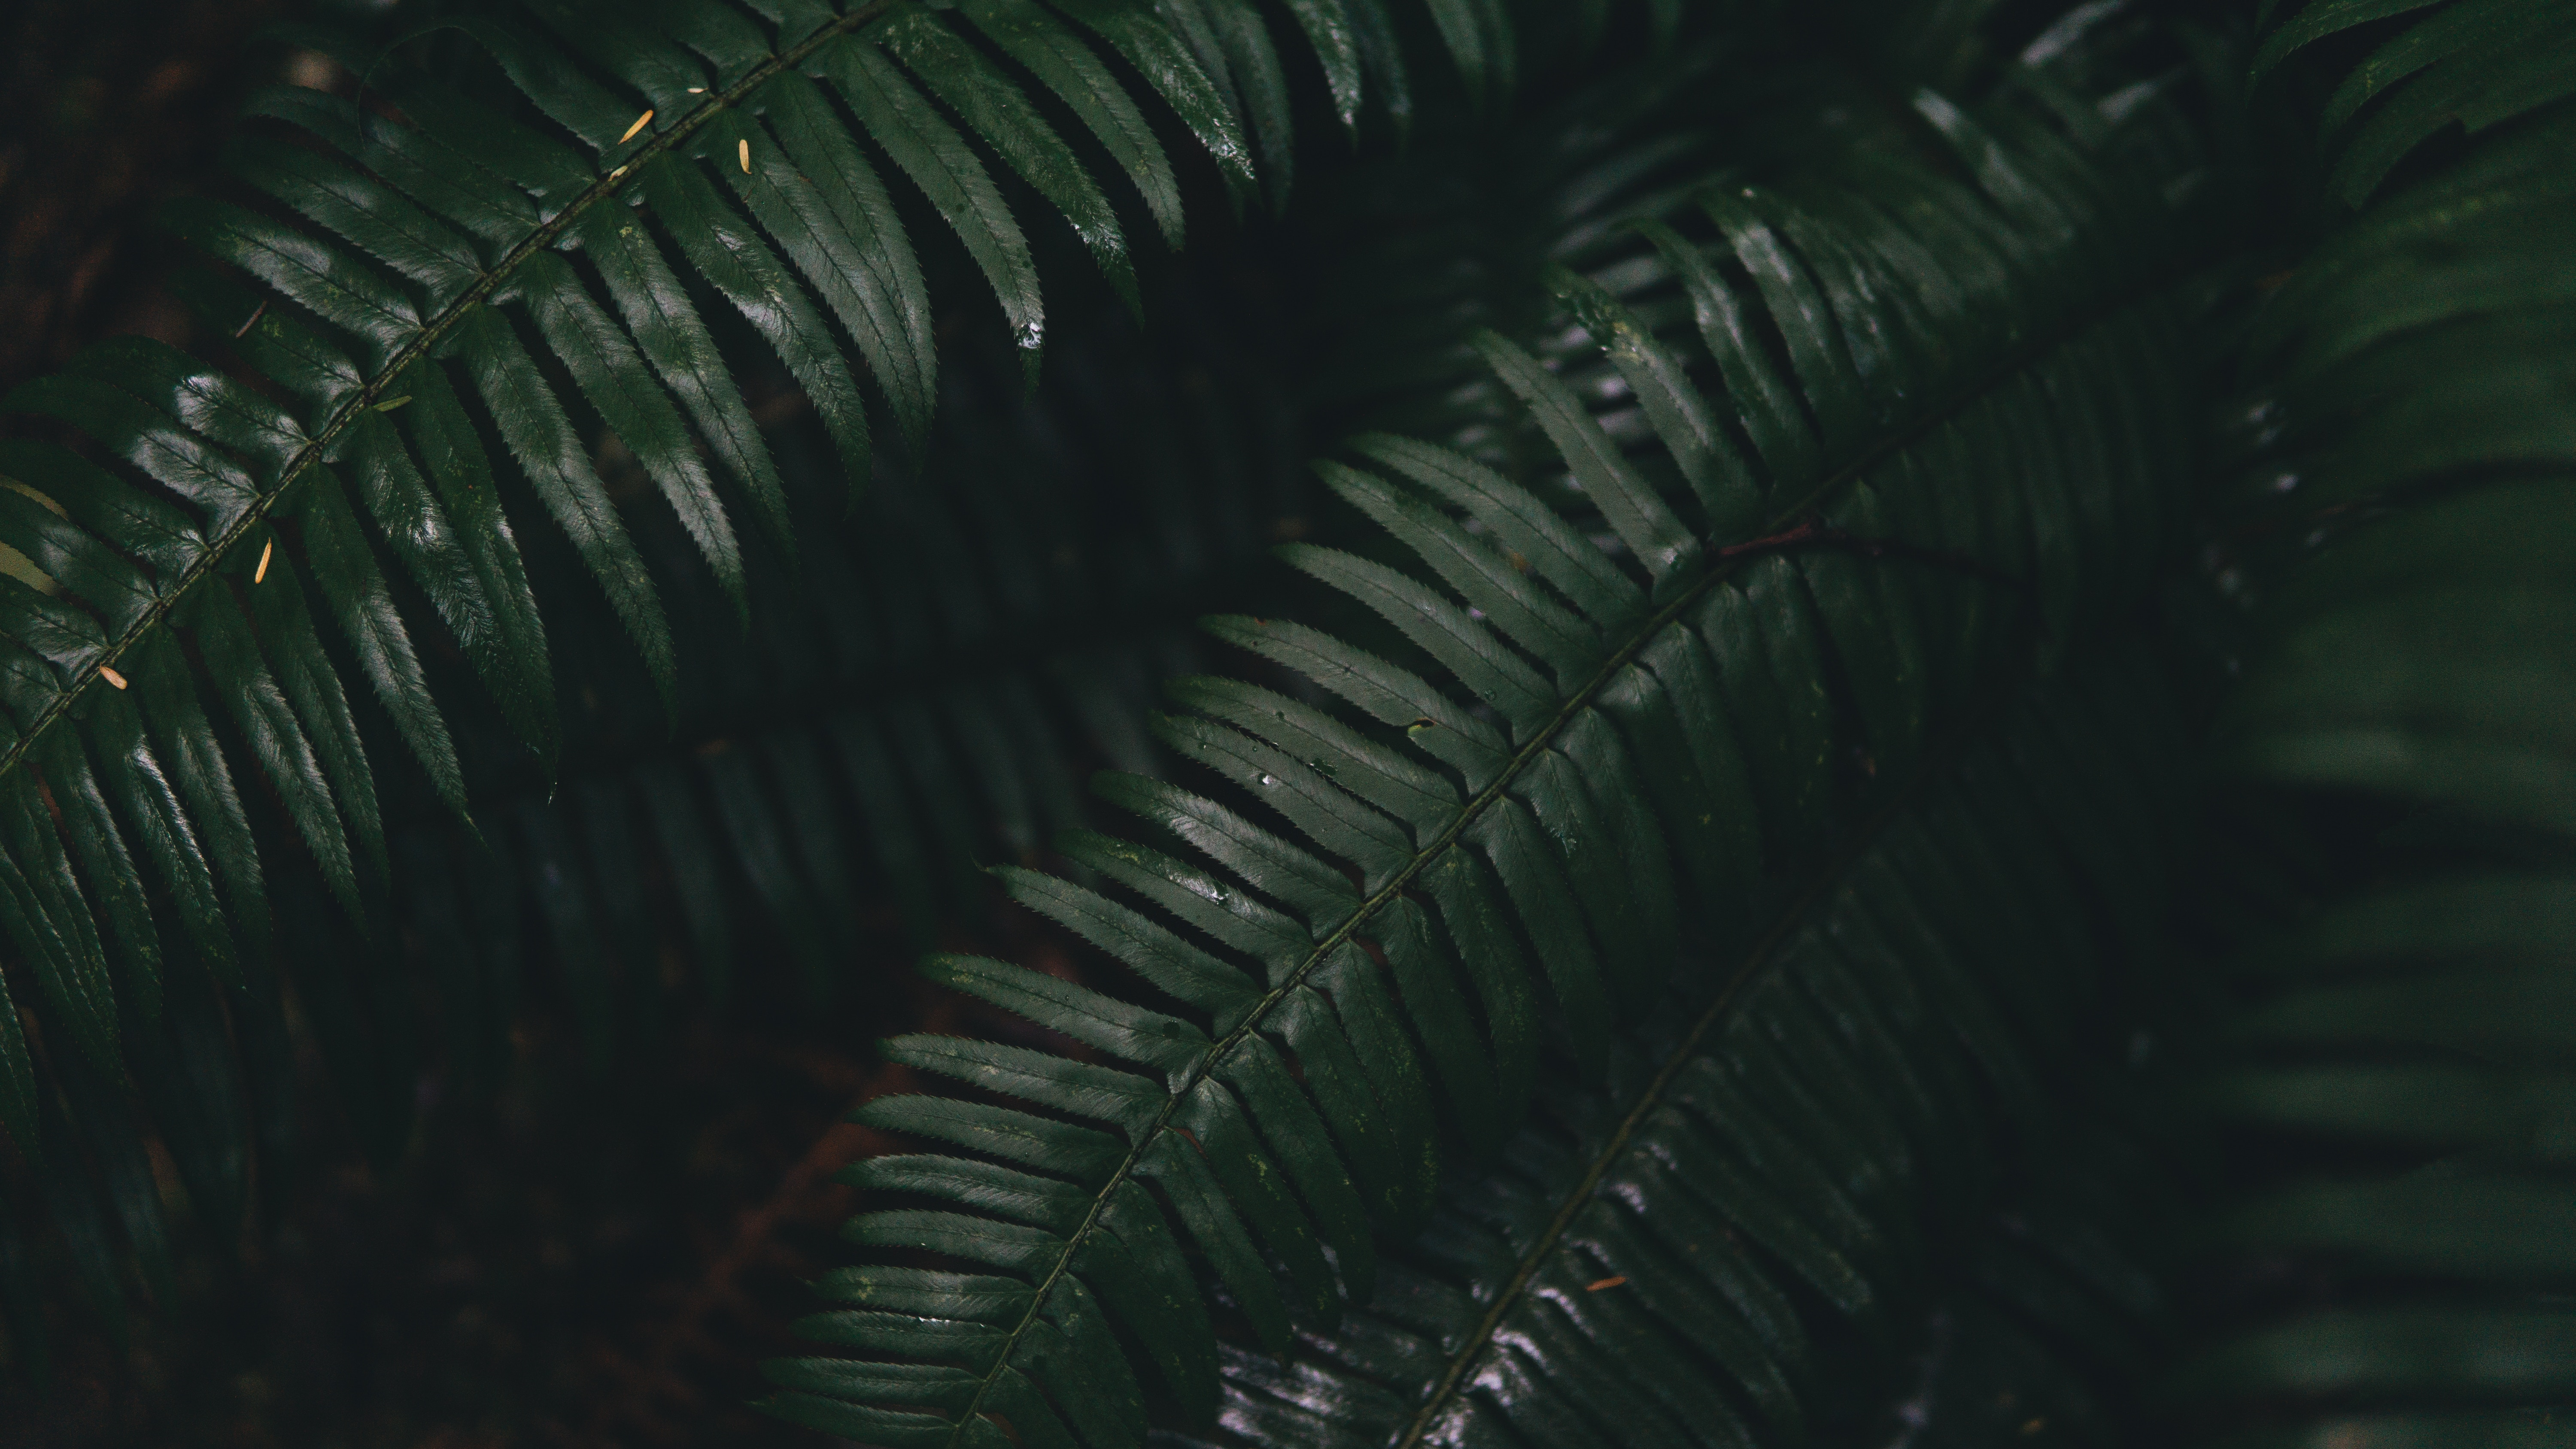 82513 download wallpaper Leaves, Plant, Macro, Fern screensavers and pictures for free